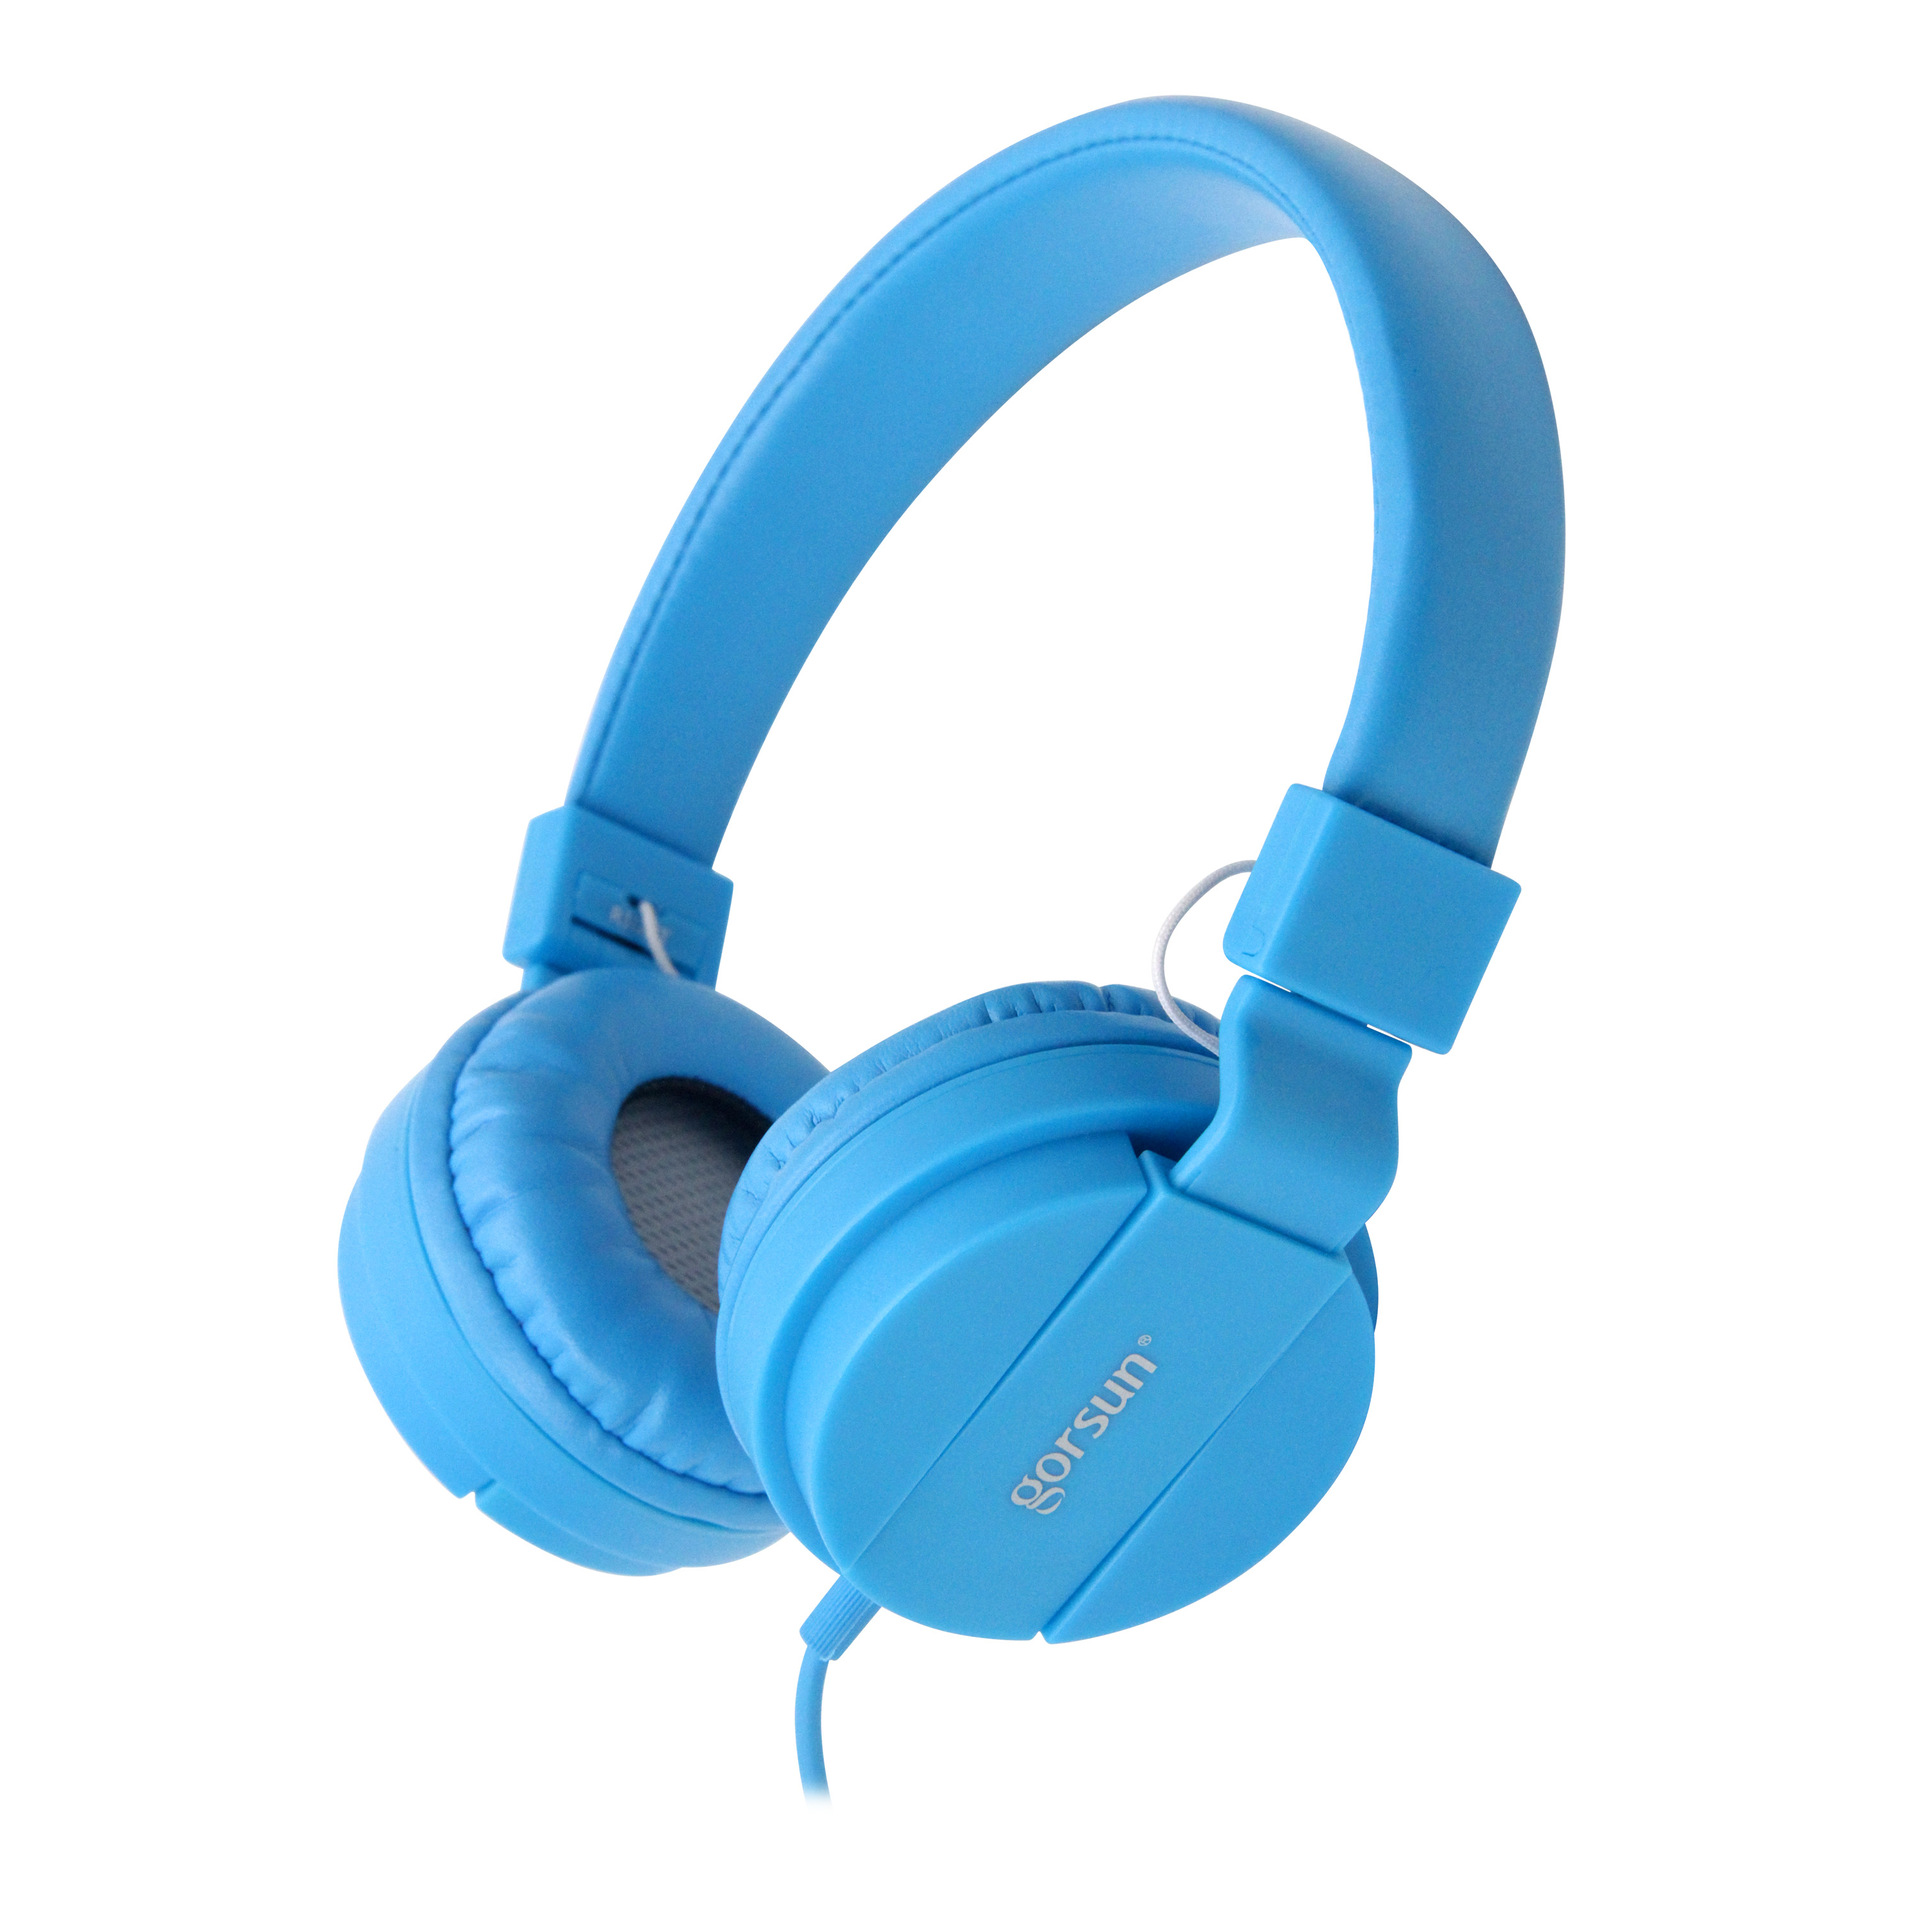 Song Still GS778 Phone Headset Headset Laptop MP3 Music Headset Manufacturers (blue)(Color:Blue)(Size:US:) - intl